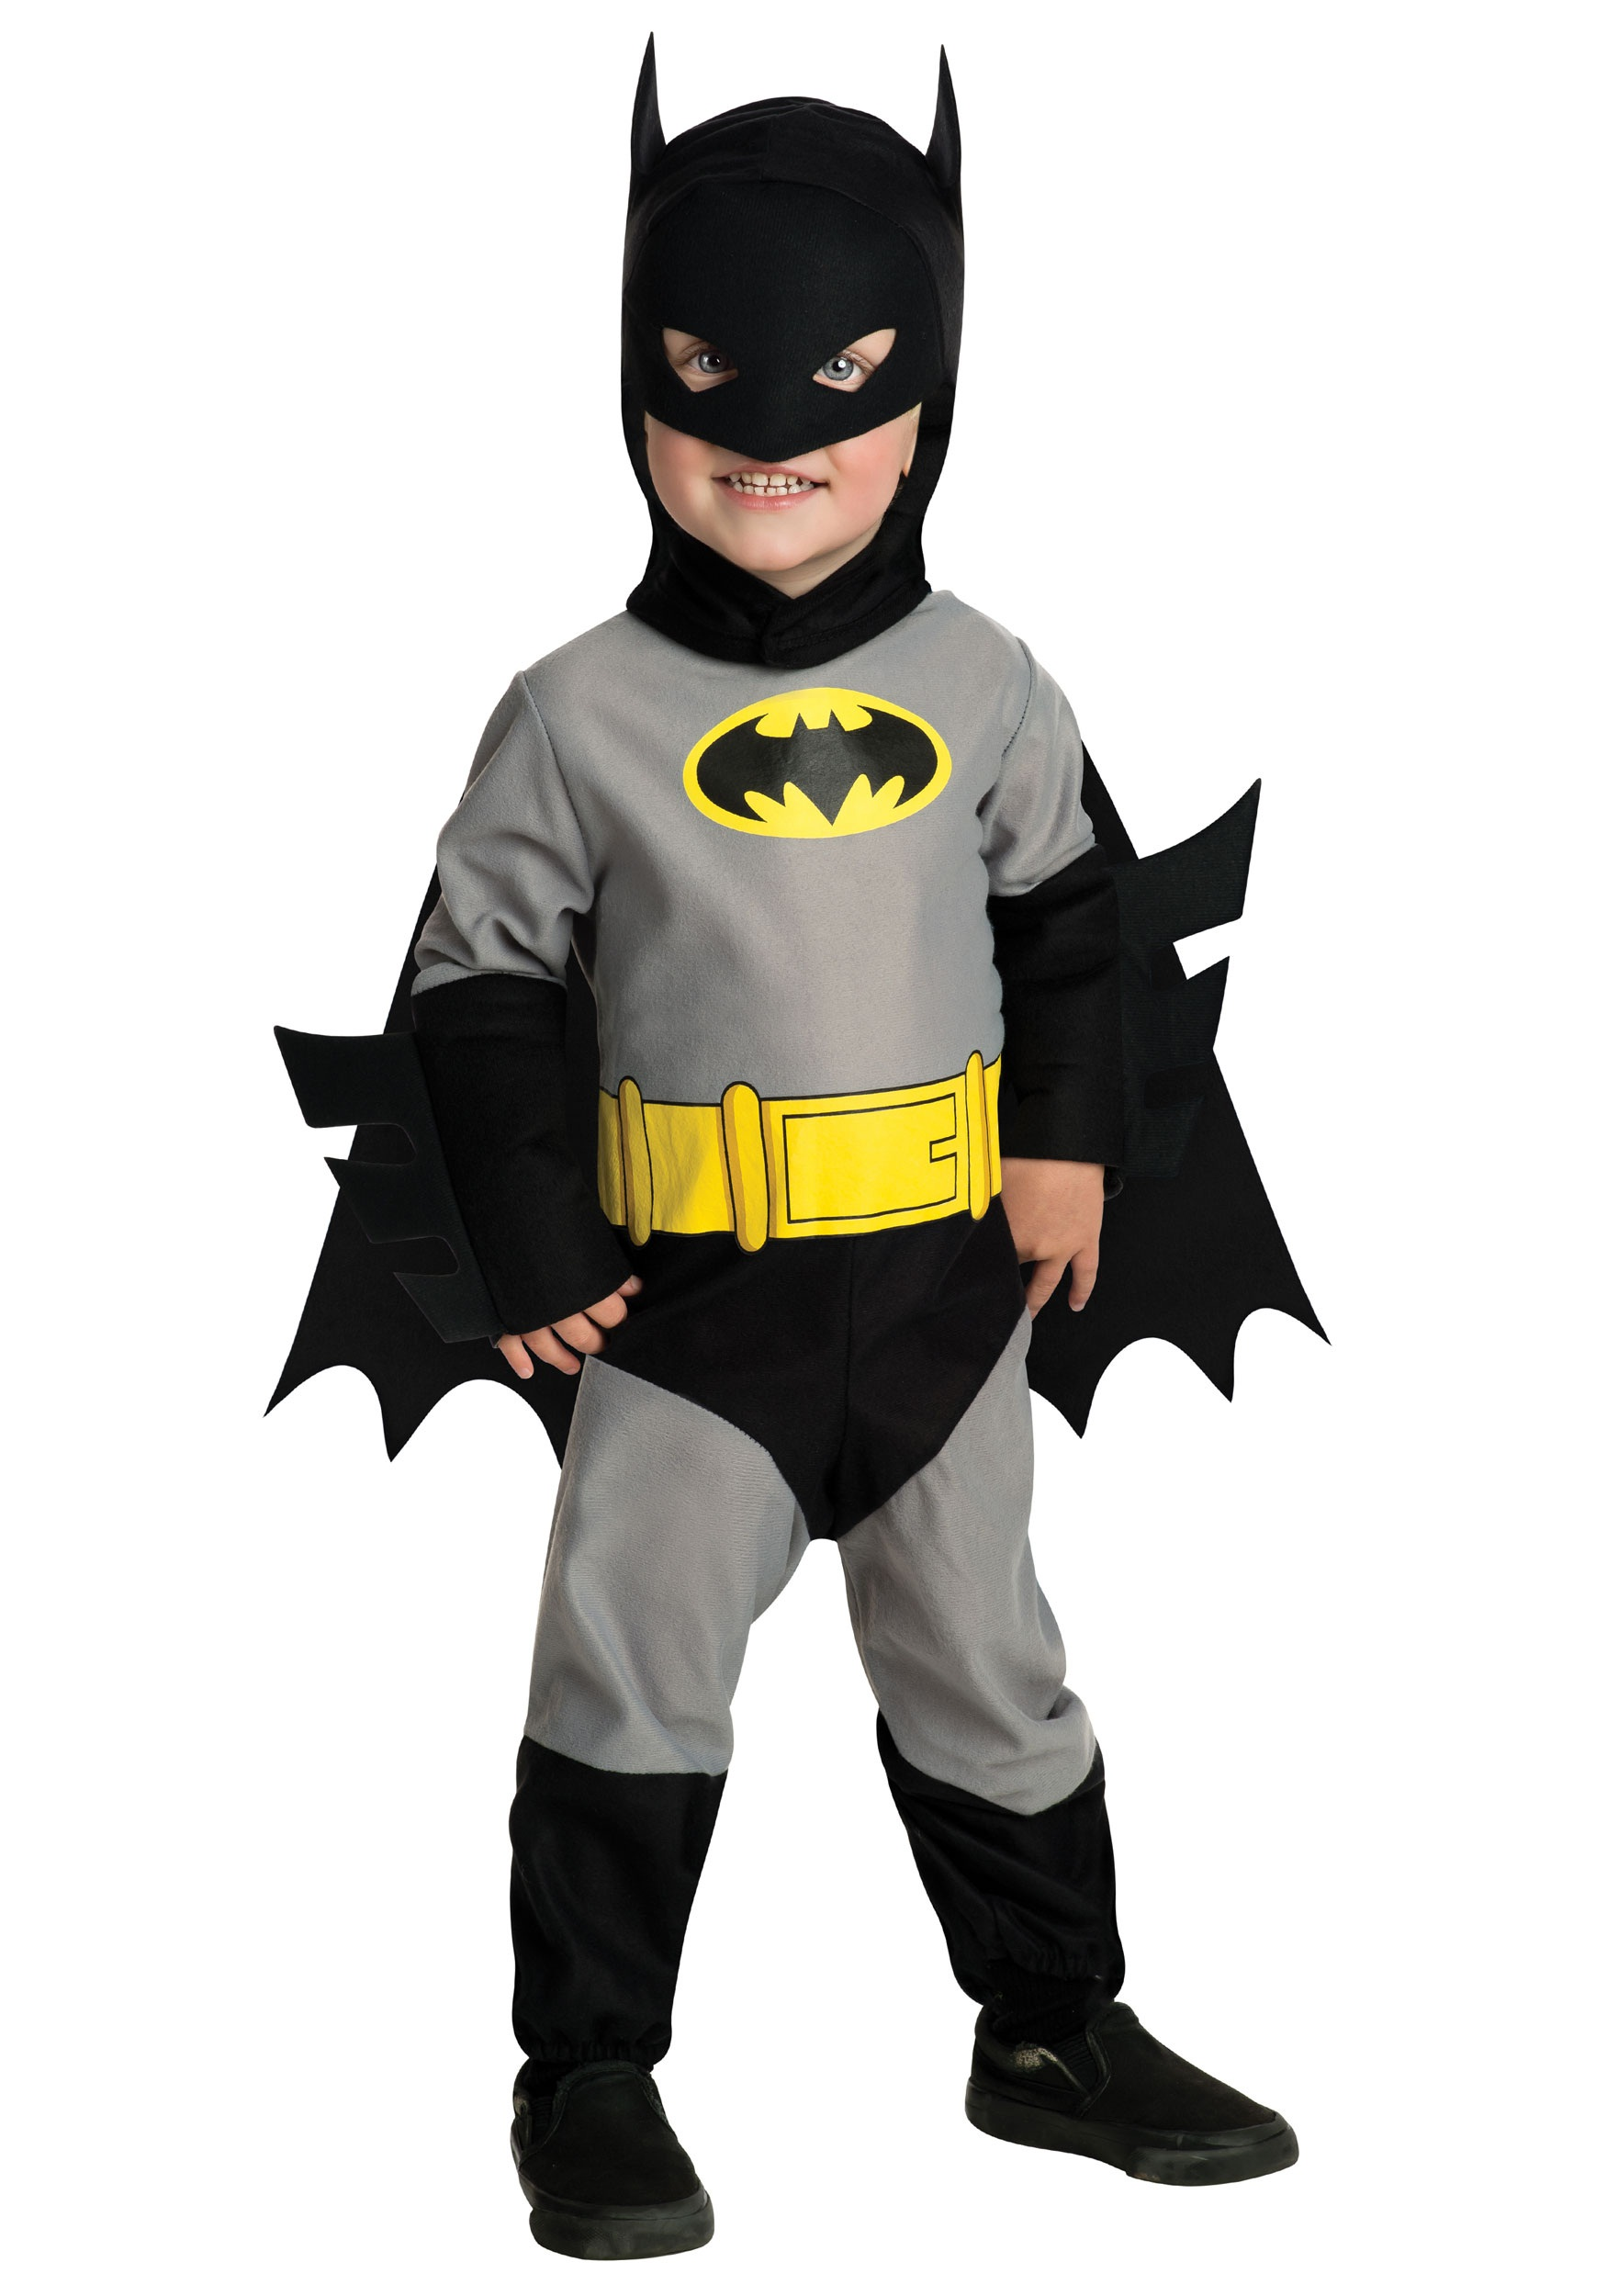 Baby Batman Costume  sc 1 st  Halloween Costumes & Batman Costumes u0026 Suits For Halloween - HalloweenCostumes.com